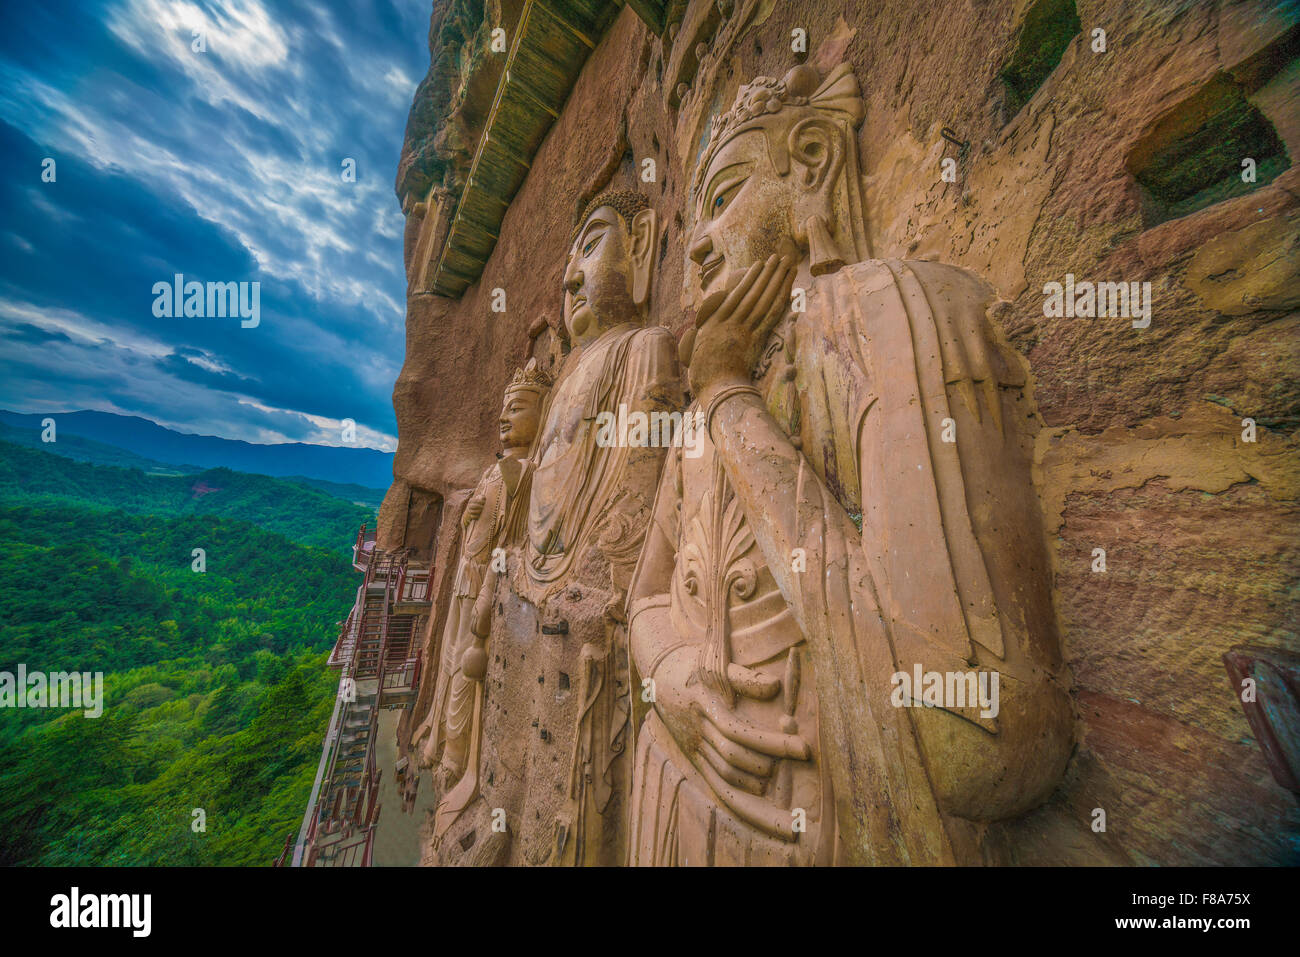 Huge Buddha statues, Maijishan Mountain Grottes,  Gansu Province, China  Dating from 5th Century - Stock Image